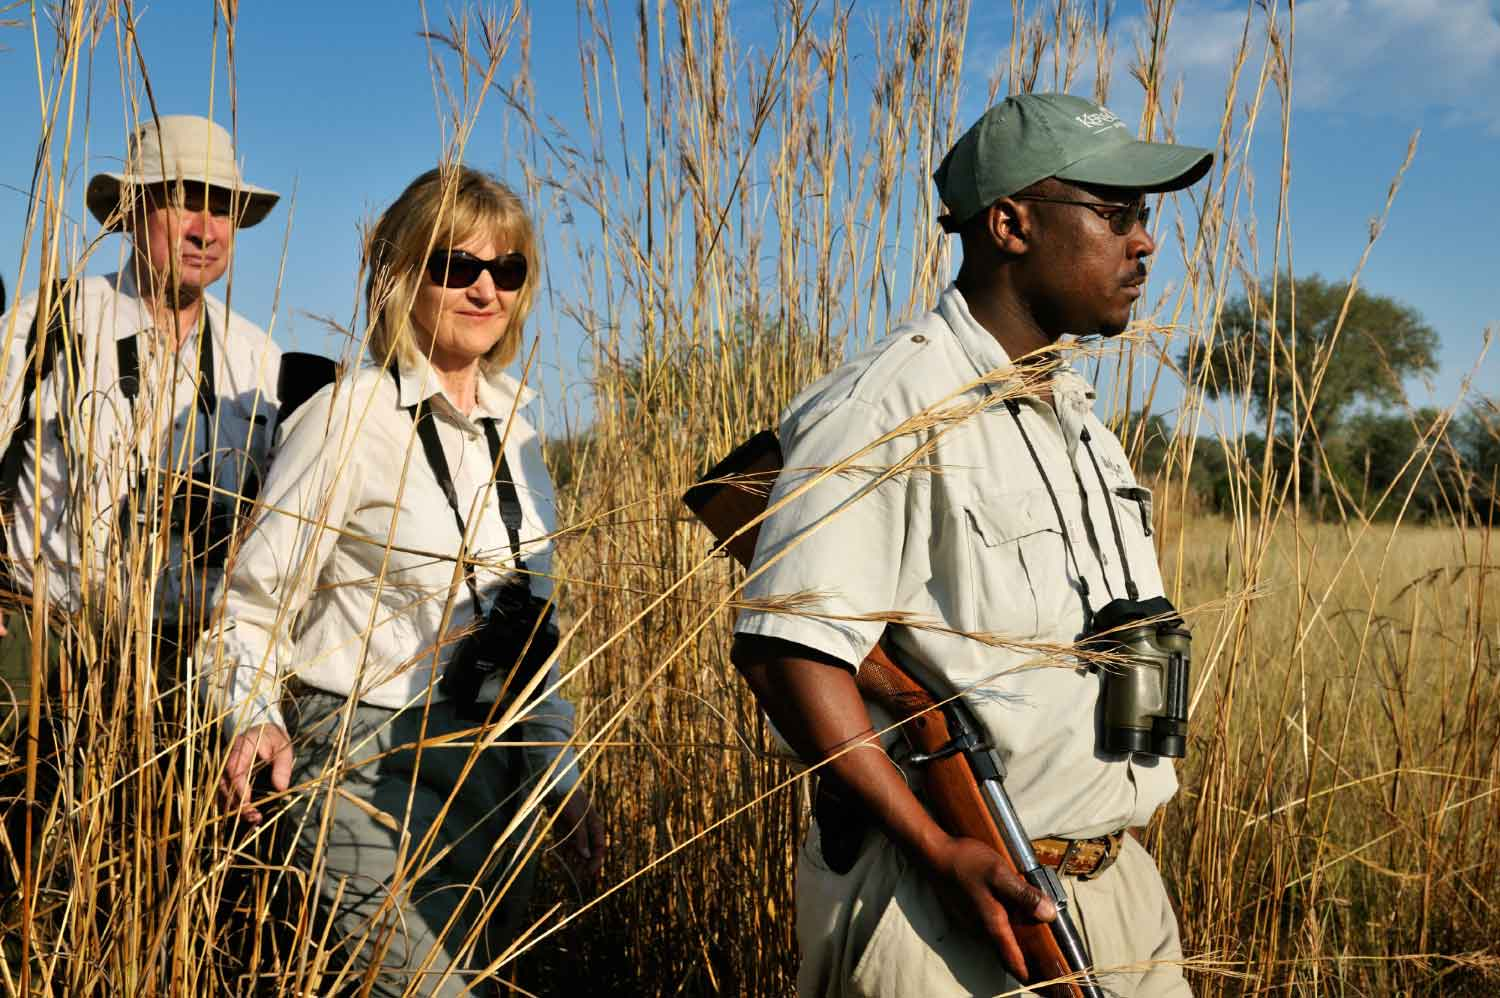 The guides at Footsteps camp share their extensive knowledge with valued guests